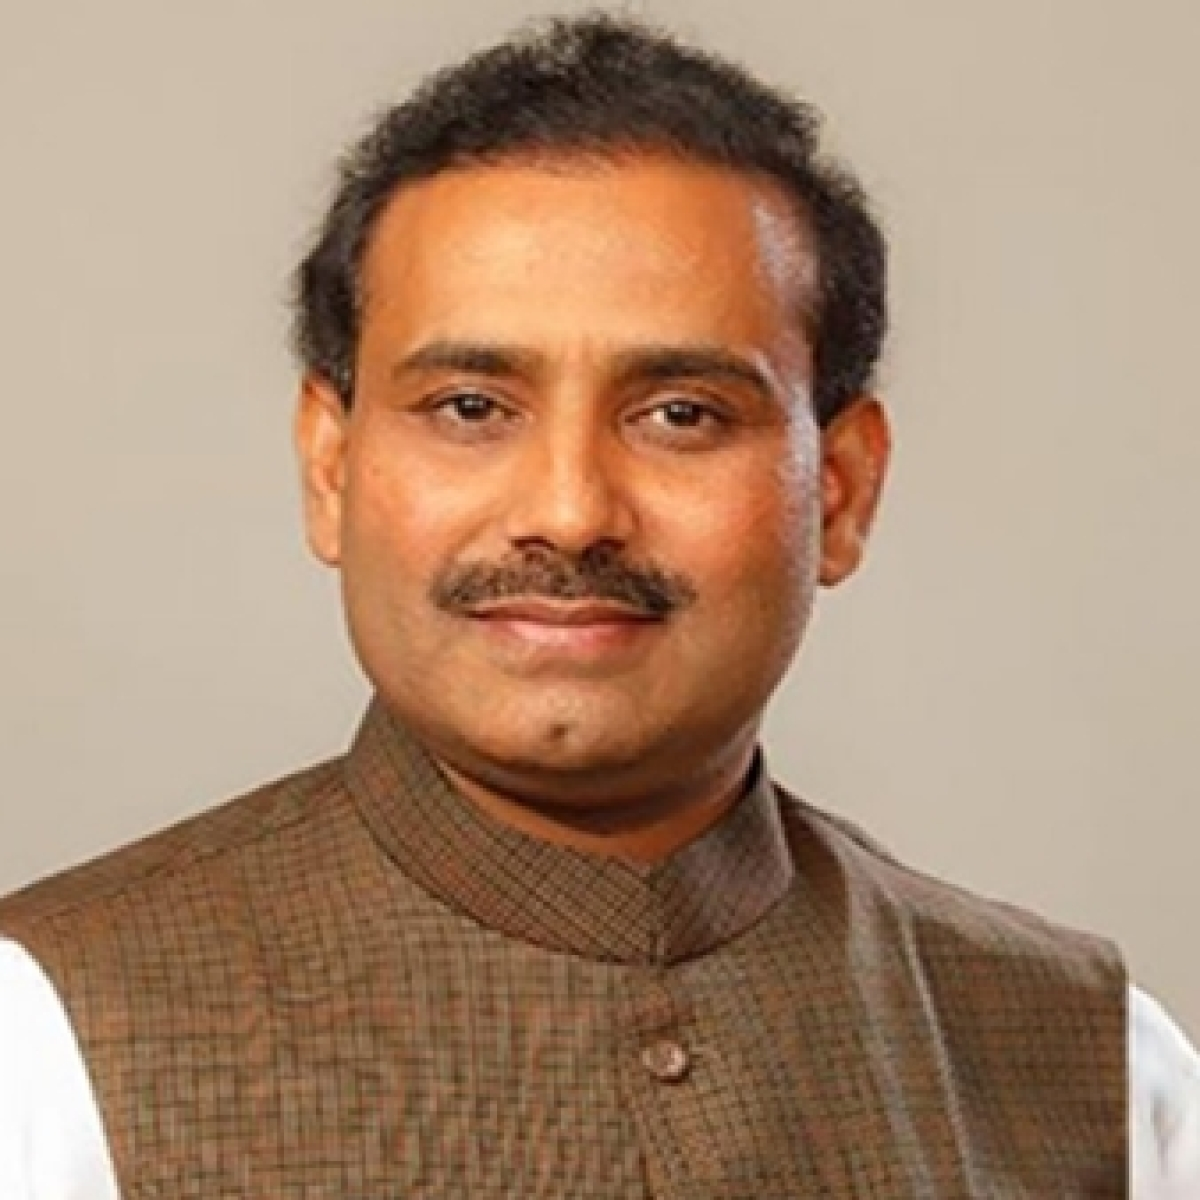 913 vacant posts of doctors in Maharashtra: Health Minister Rajesh Tope